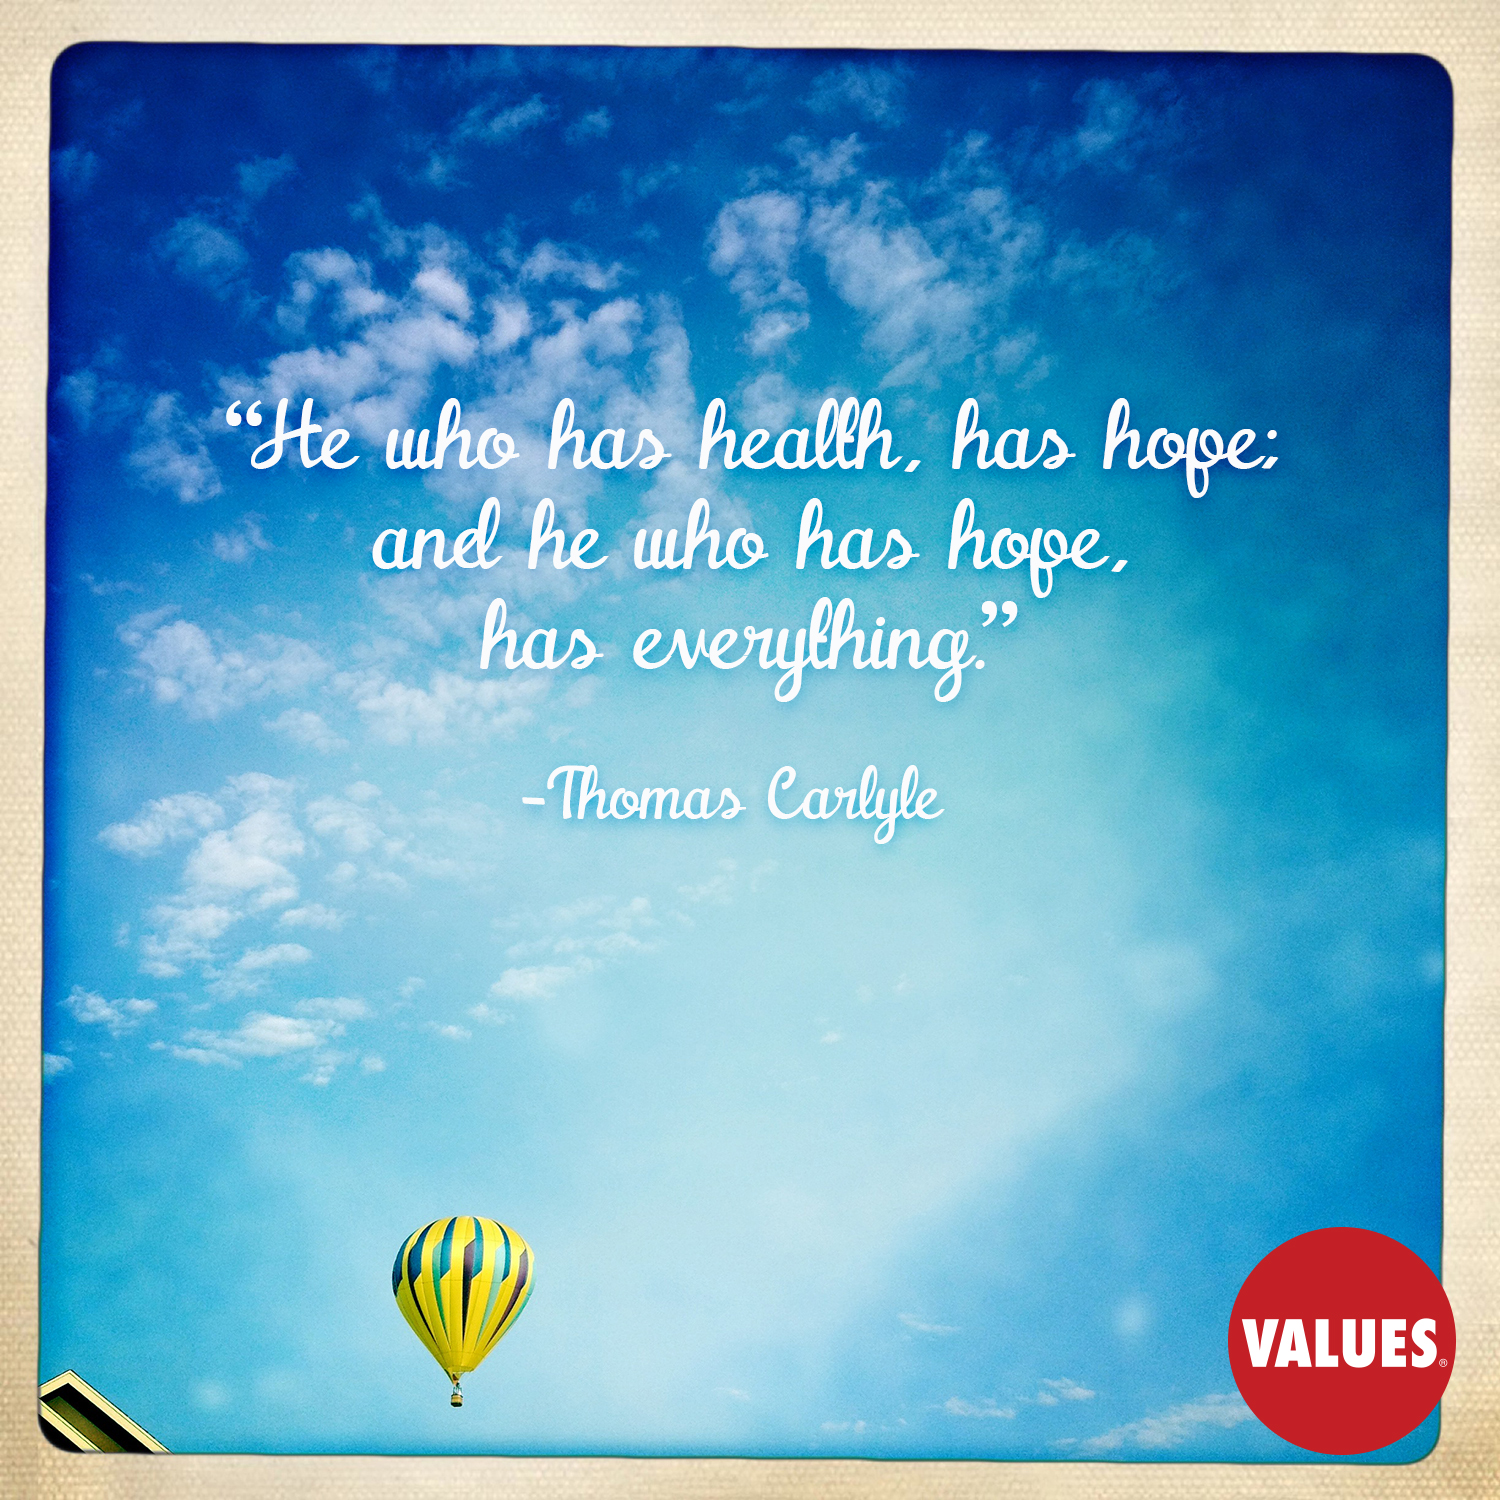 He who has health, has hope; and he who has hope, has everything. —Thomas Carlyle